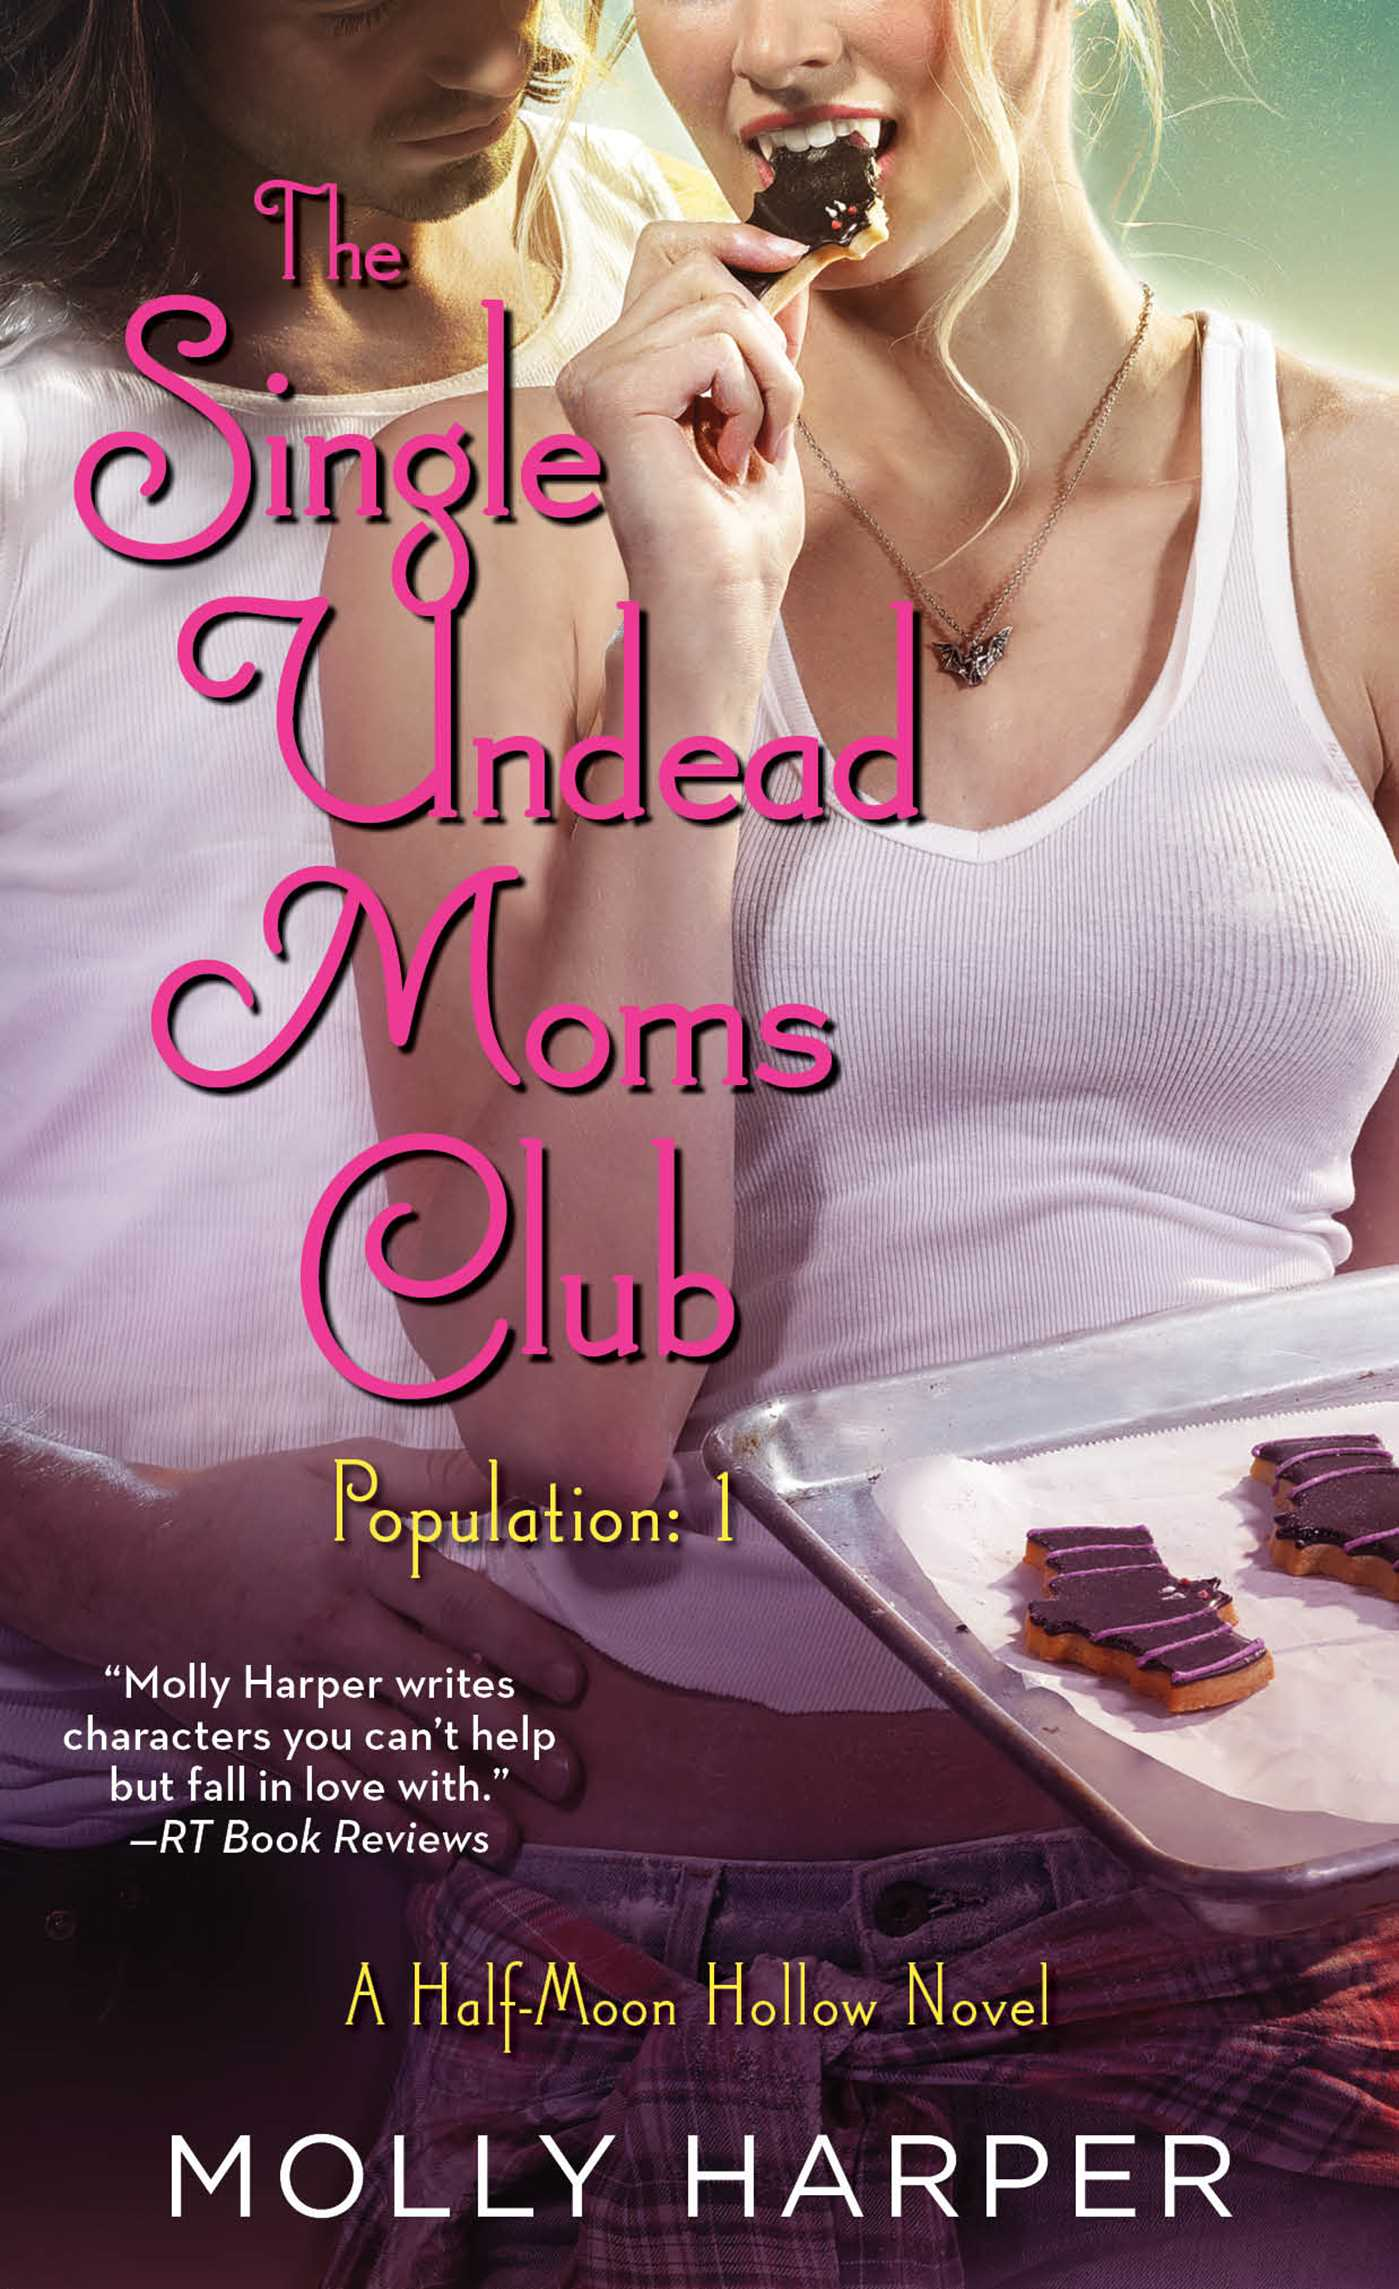 The single undead moms club 9781476794396 hr